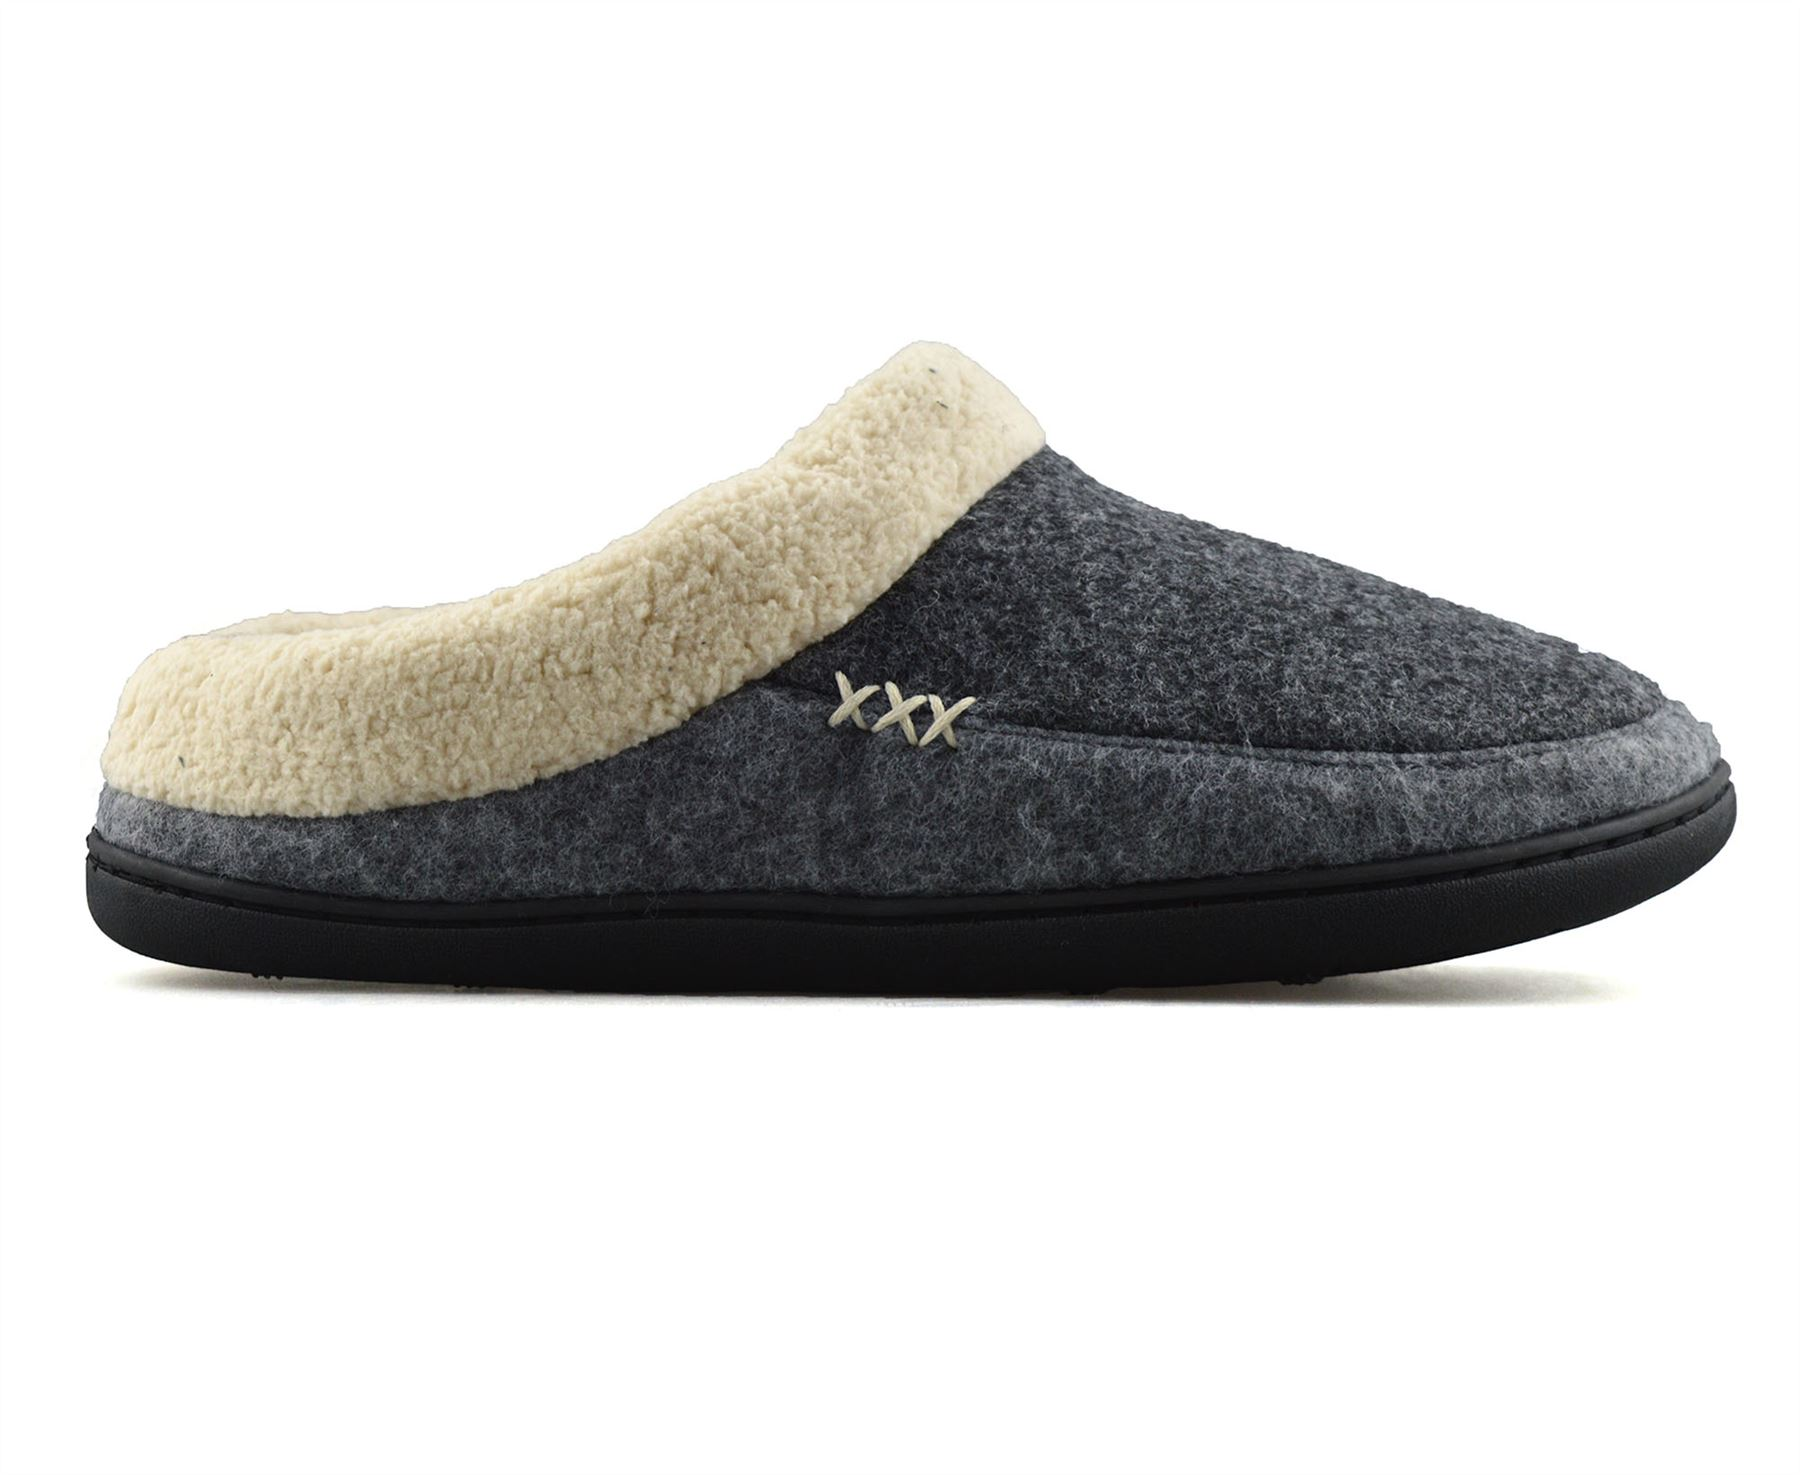 Details about Mens Memory Foam Warm Faux Suede Fleece Slippers Slip On Clog Mules Shoes Size